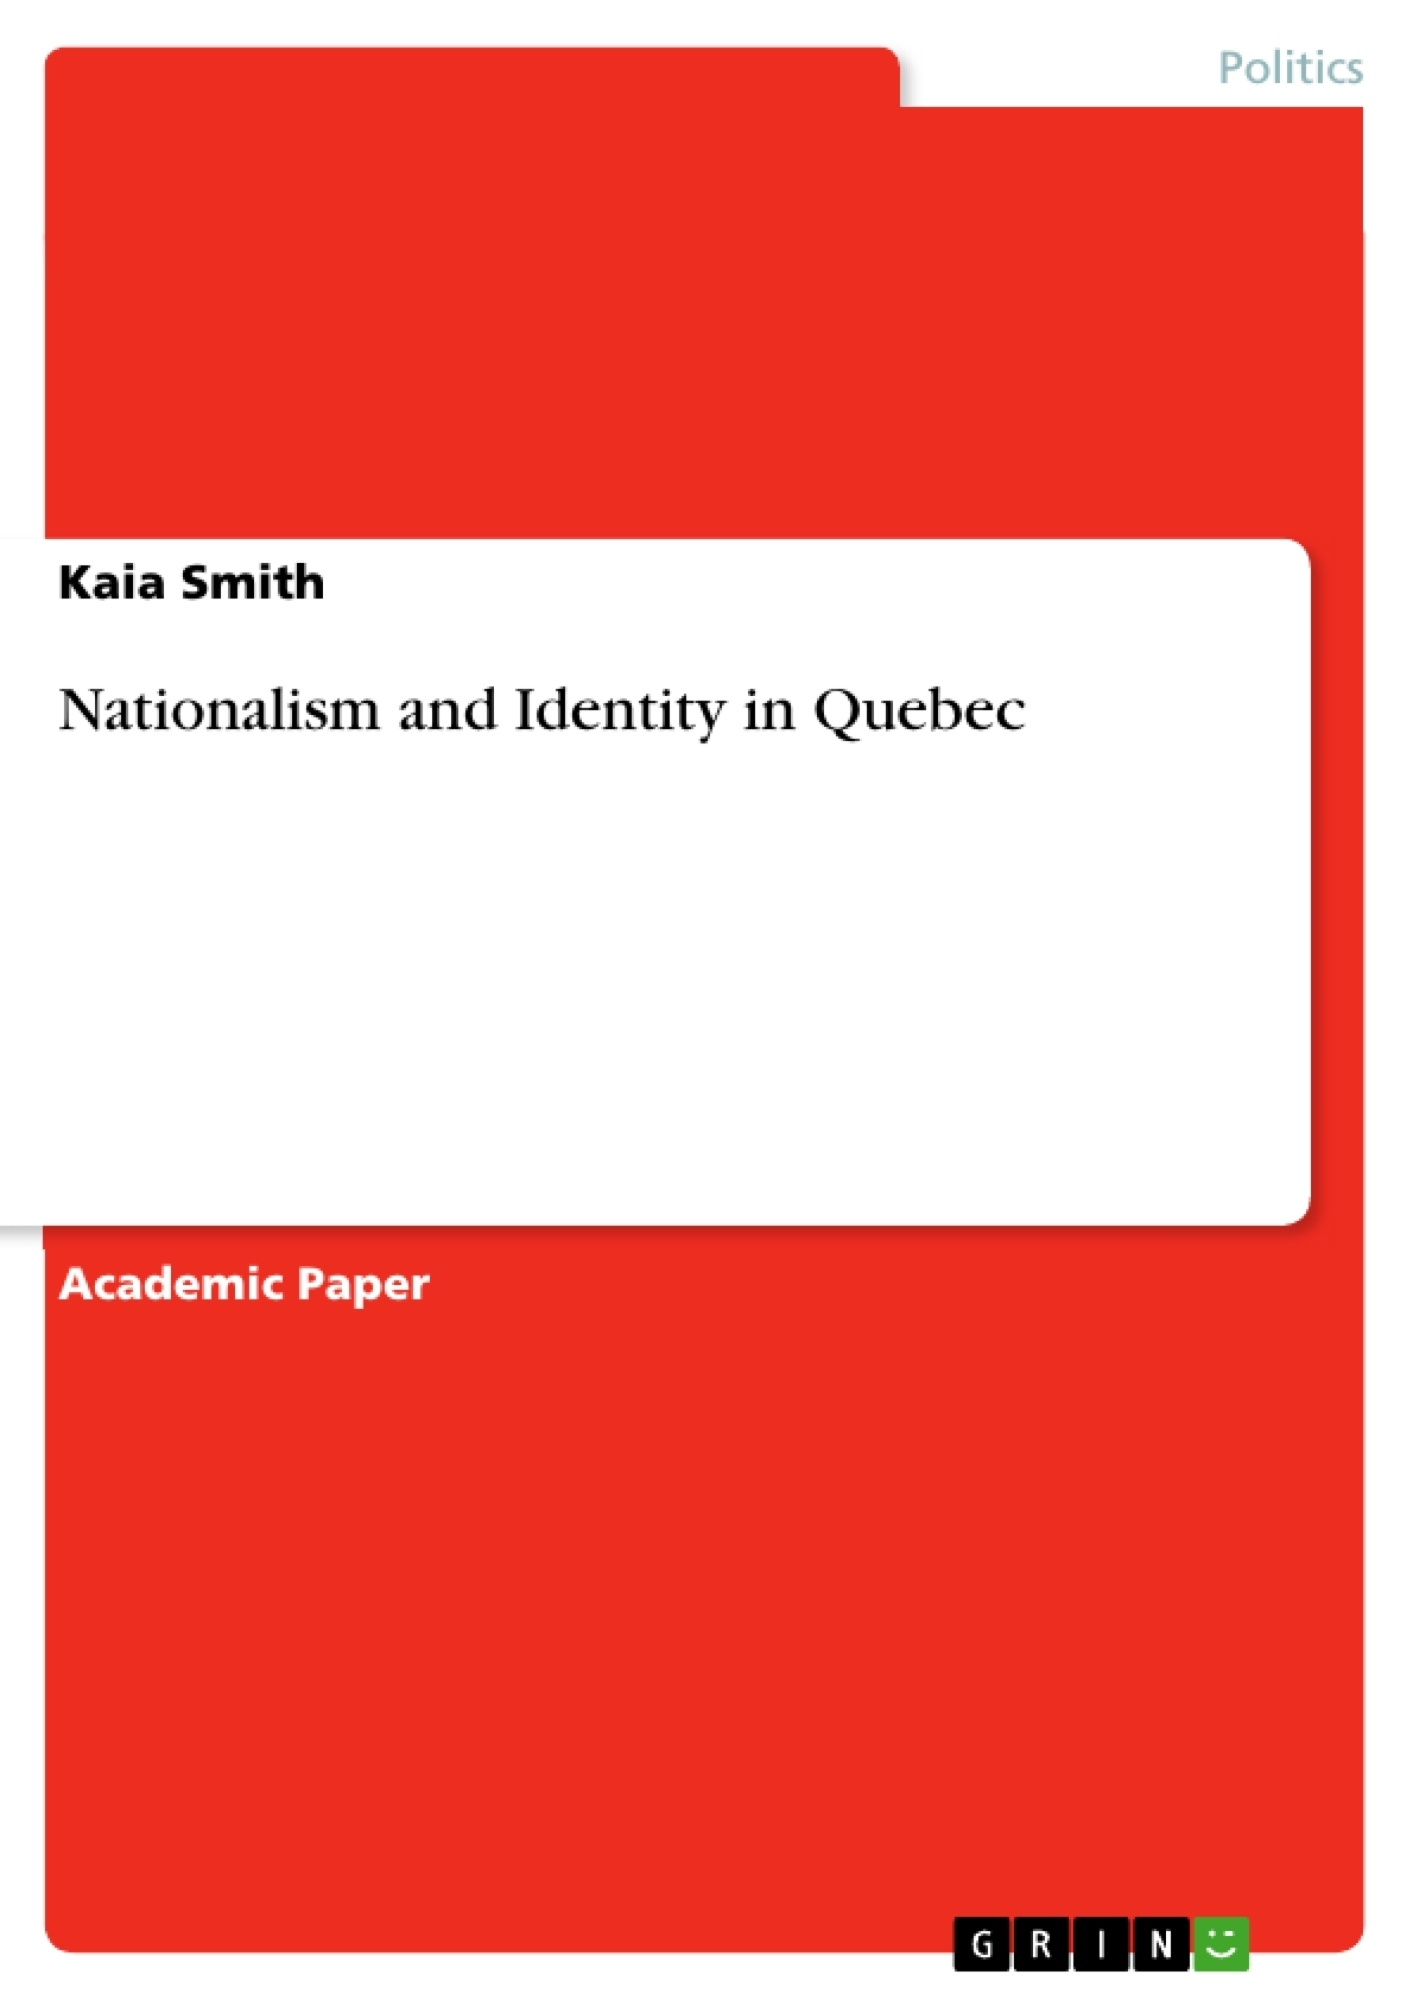 Title: Nationalism and Identity in Quebec